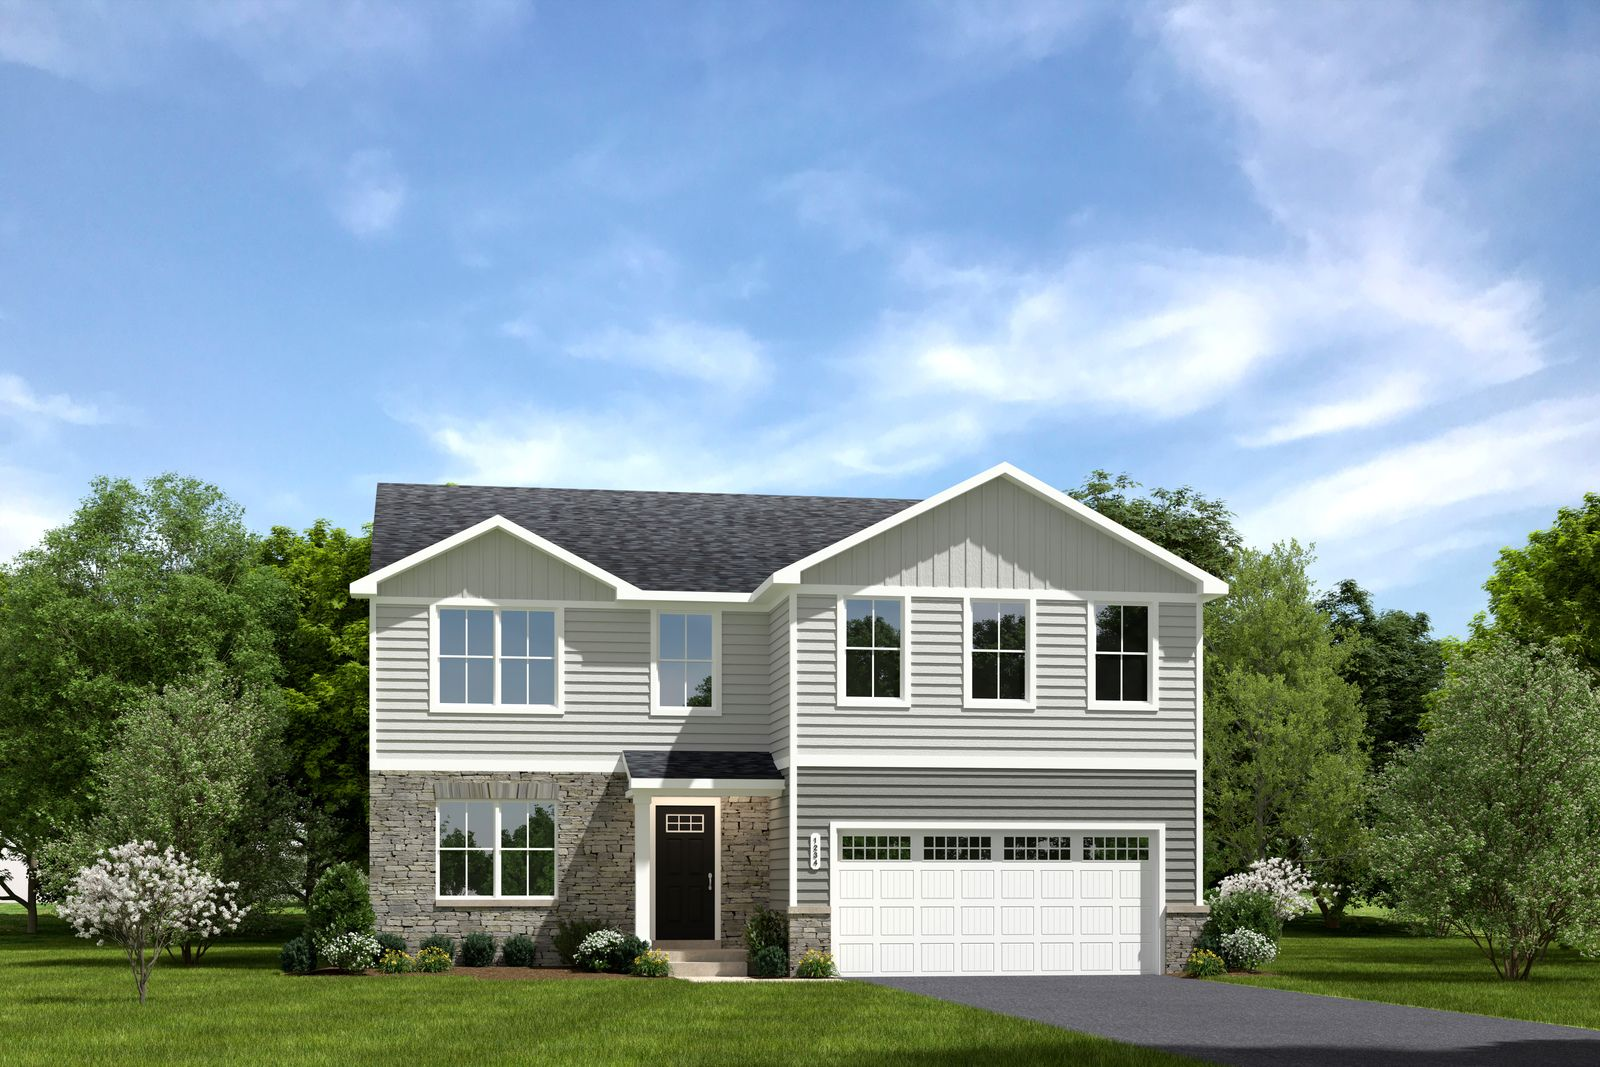 New Homes near Maineville - Welcome to the Woodlands at Morrow!:Best kept secret in Little Miami Schools with beautiful wooded homesites, included basements and value that can't be beat! All appliances included, minutes from I-71. Schedule your visit today!